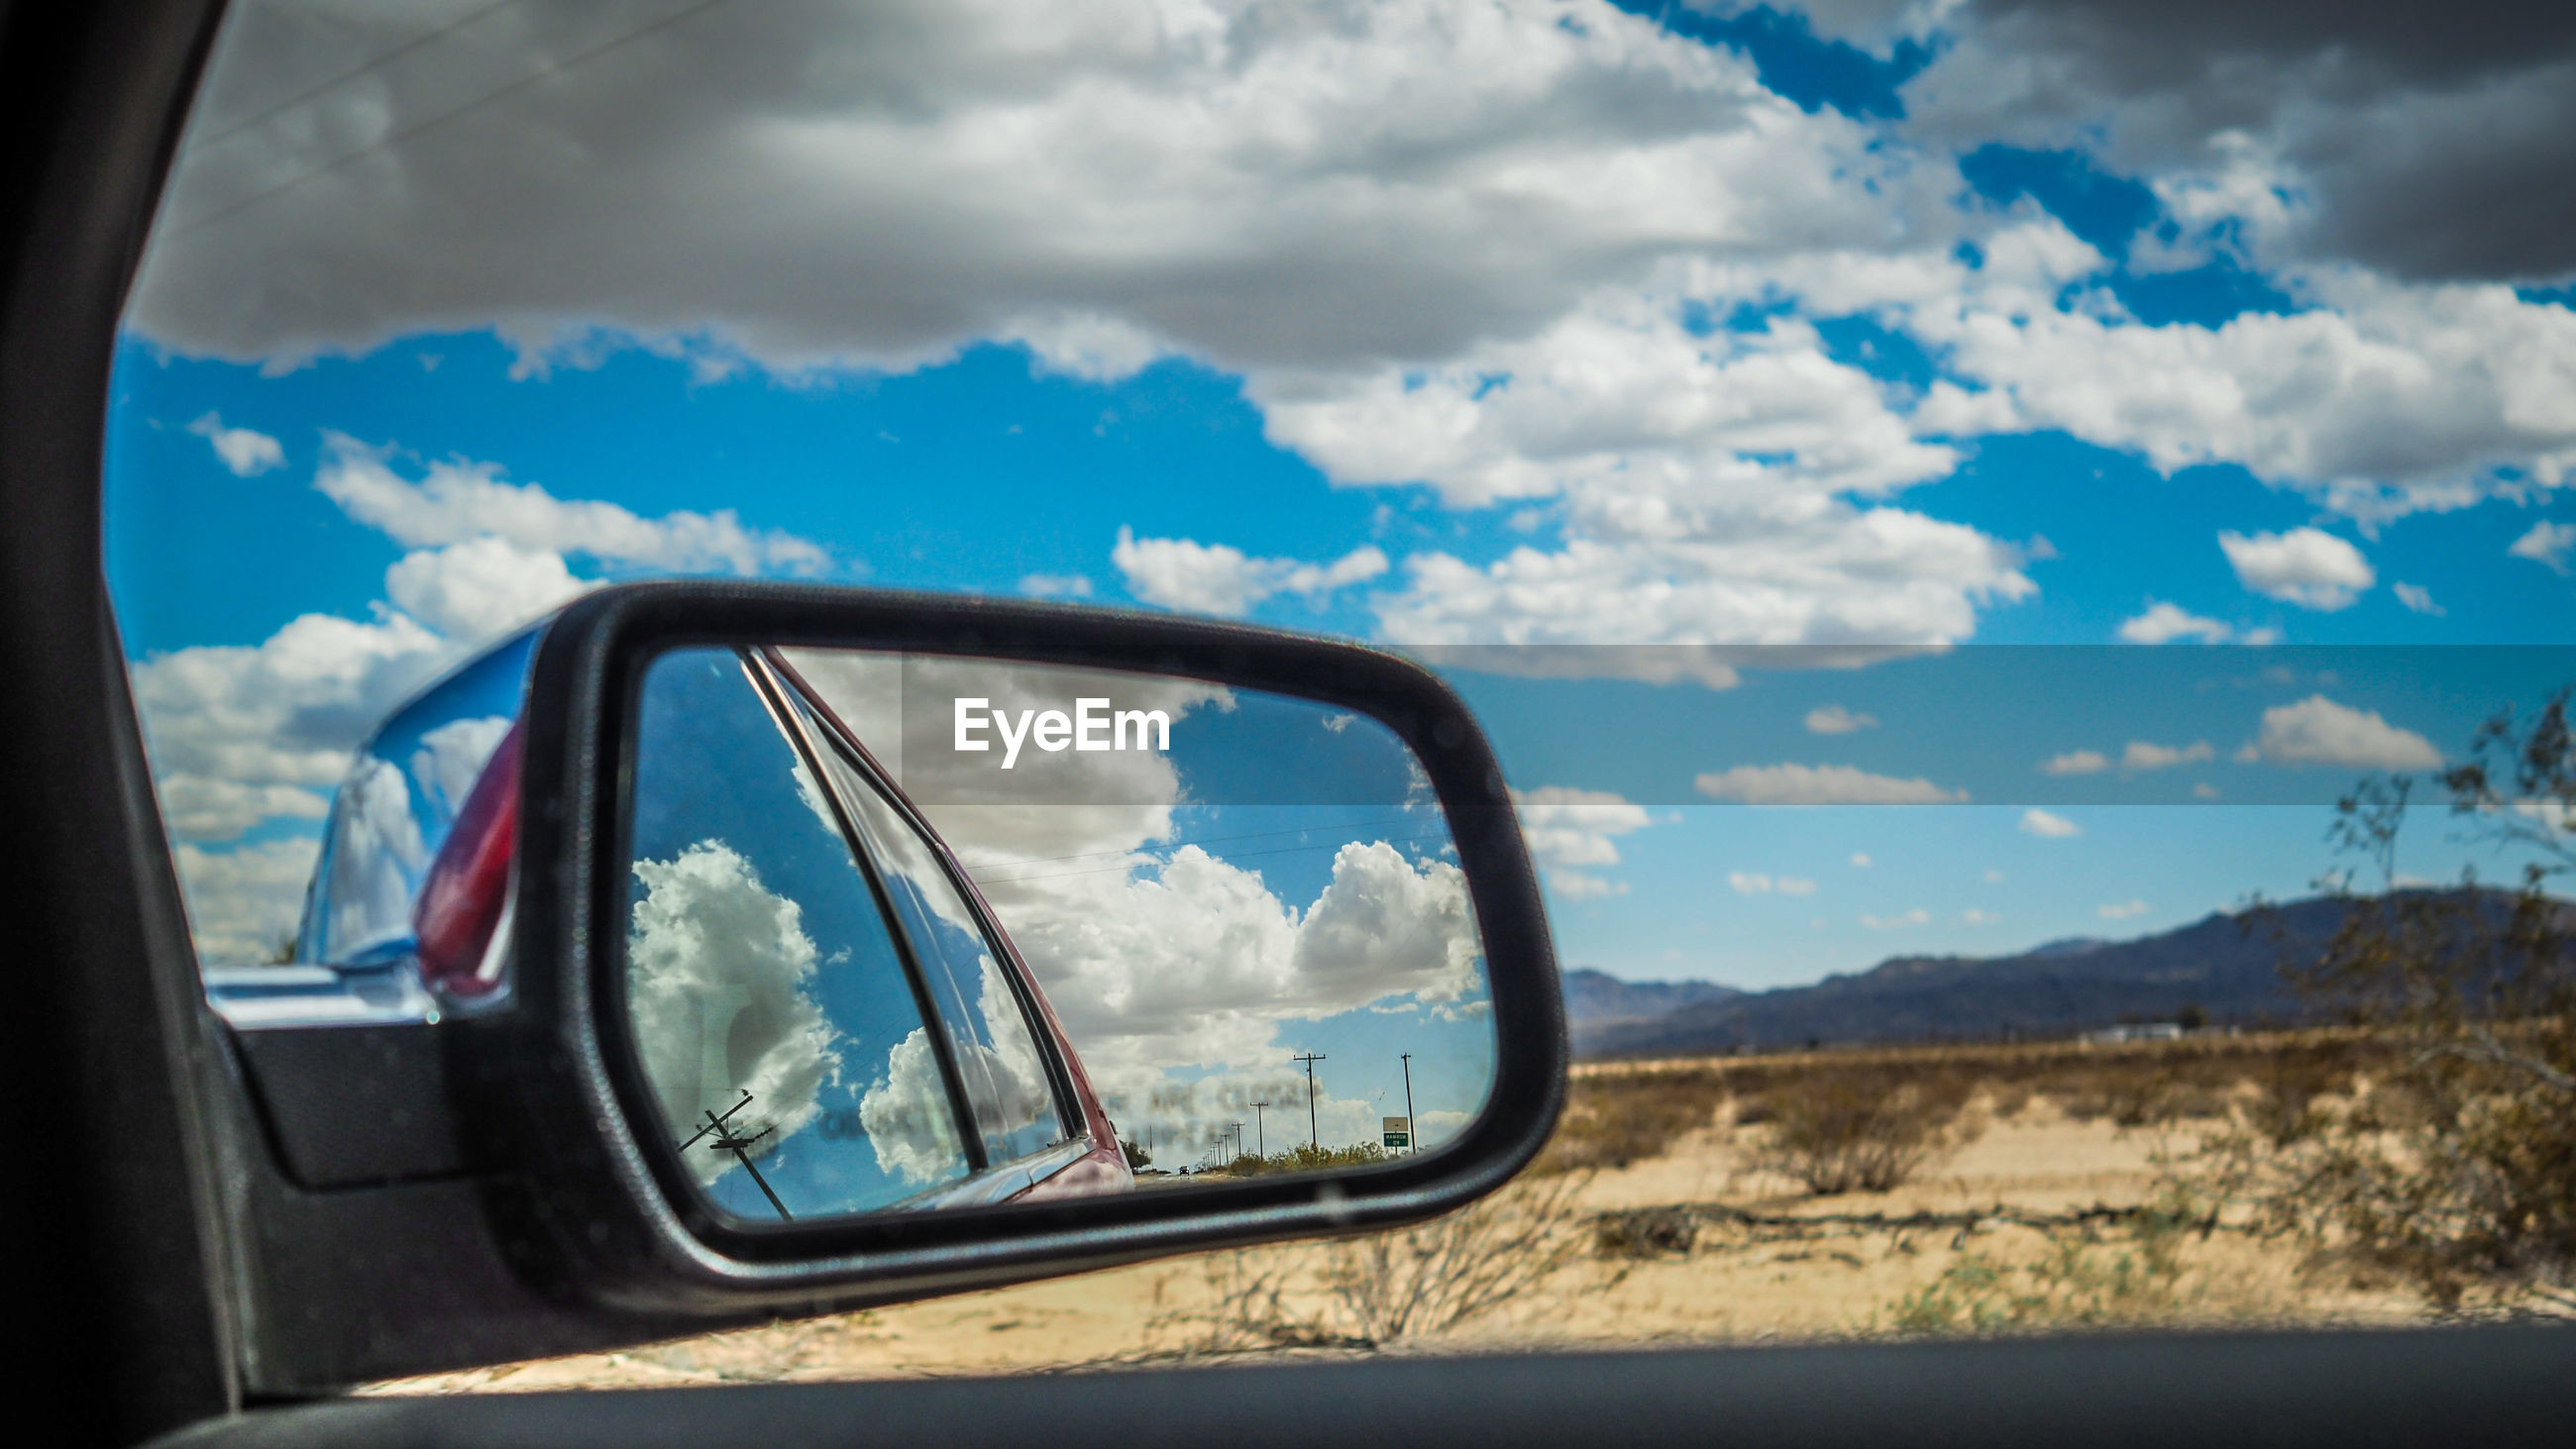 Reflection of car and sky on side-view mirror